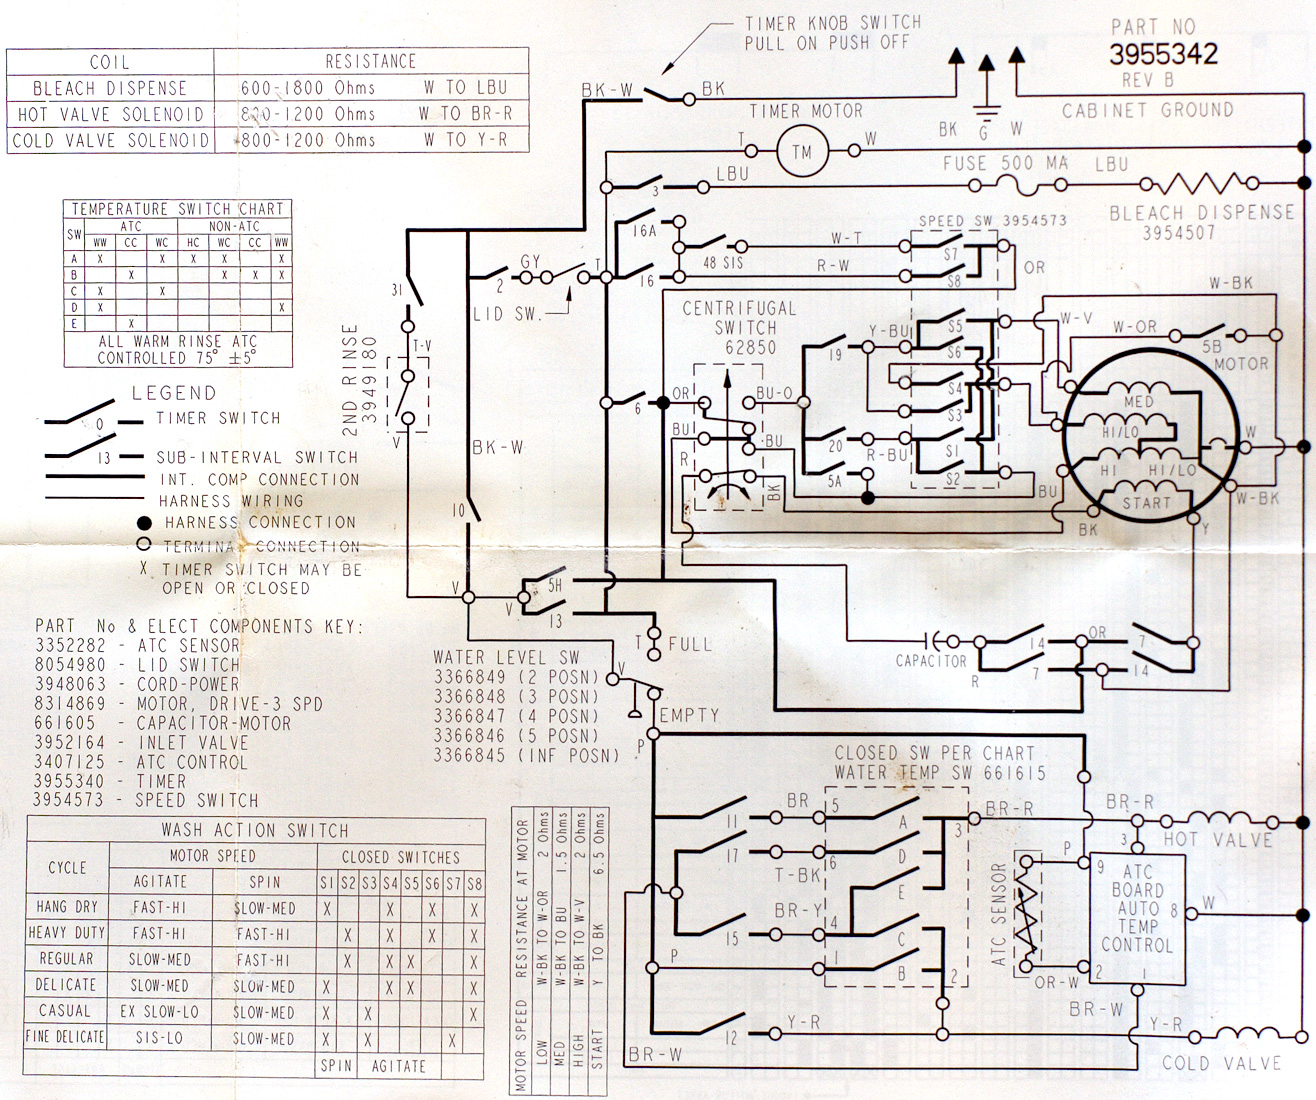 kenmore range wiring diagram starting know about wiring diagram \u2022 kenmore cooktop wiring diagram i have a 3 speed motor out of a kenmore washing machine kenmore gas range wiring diagram